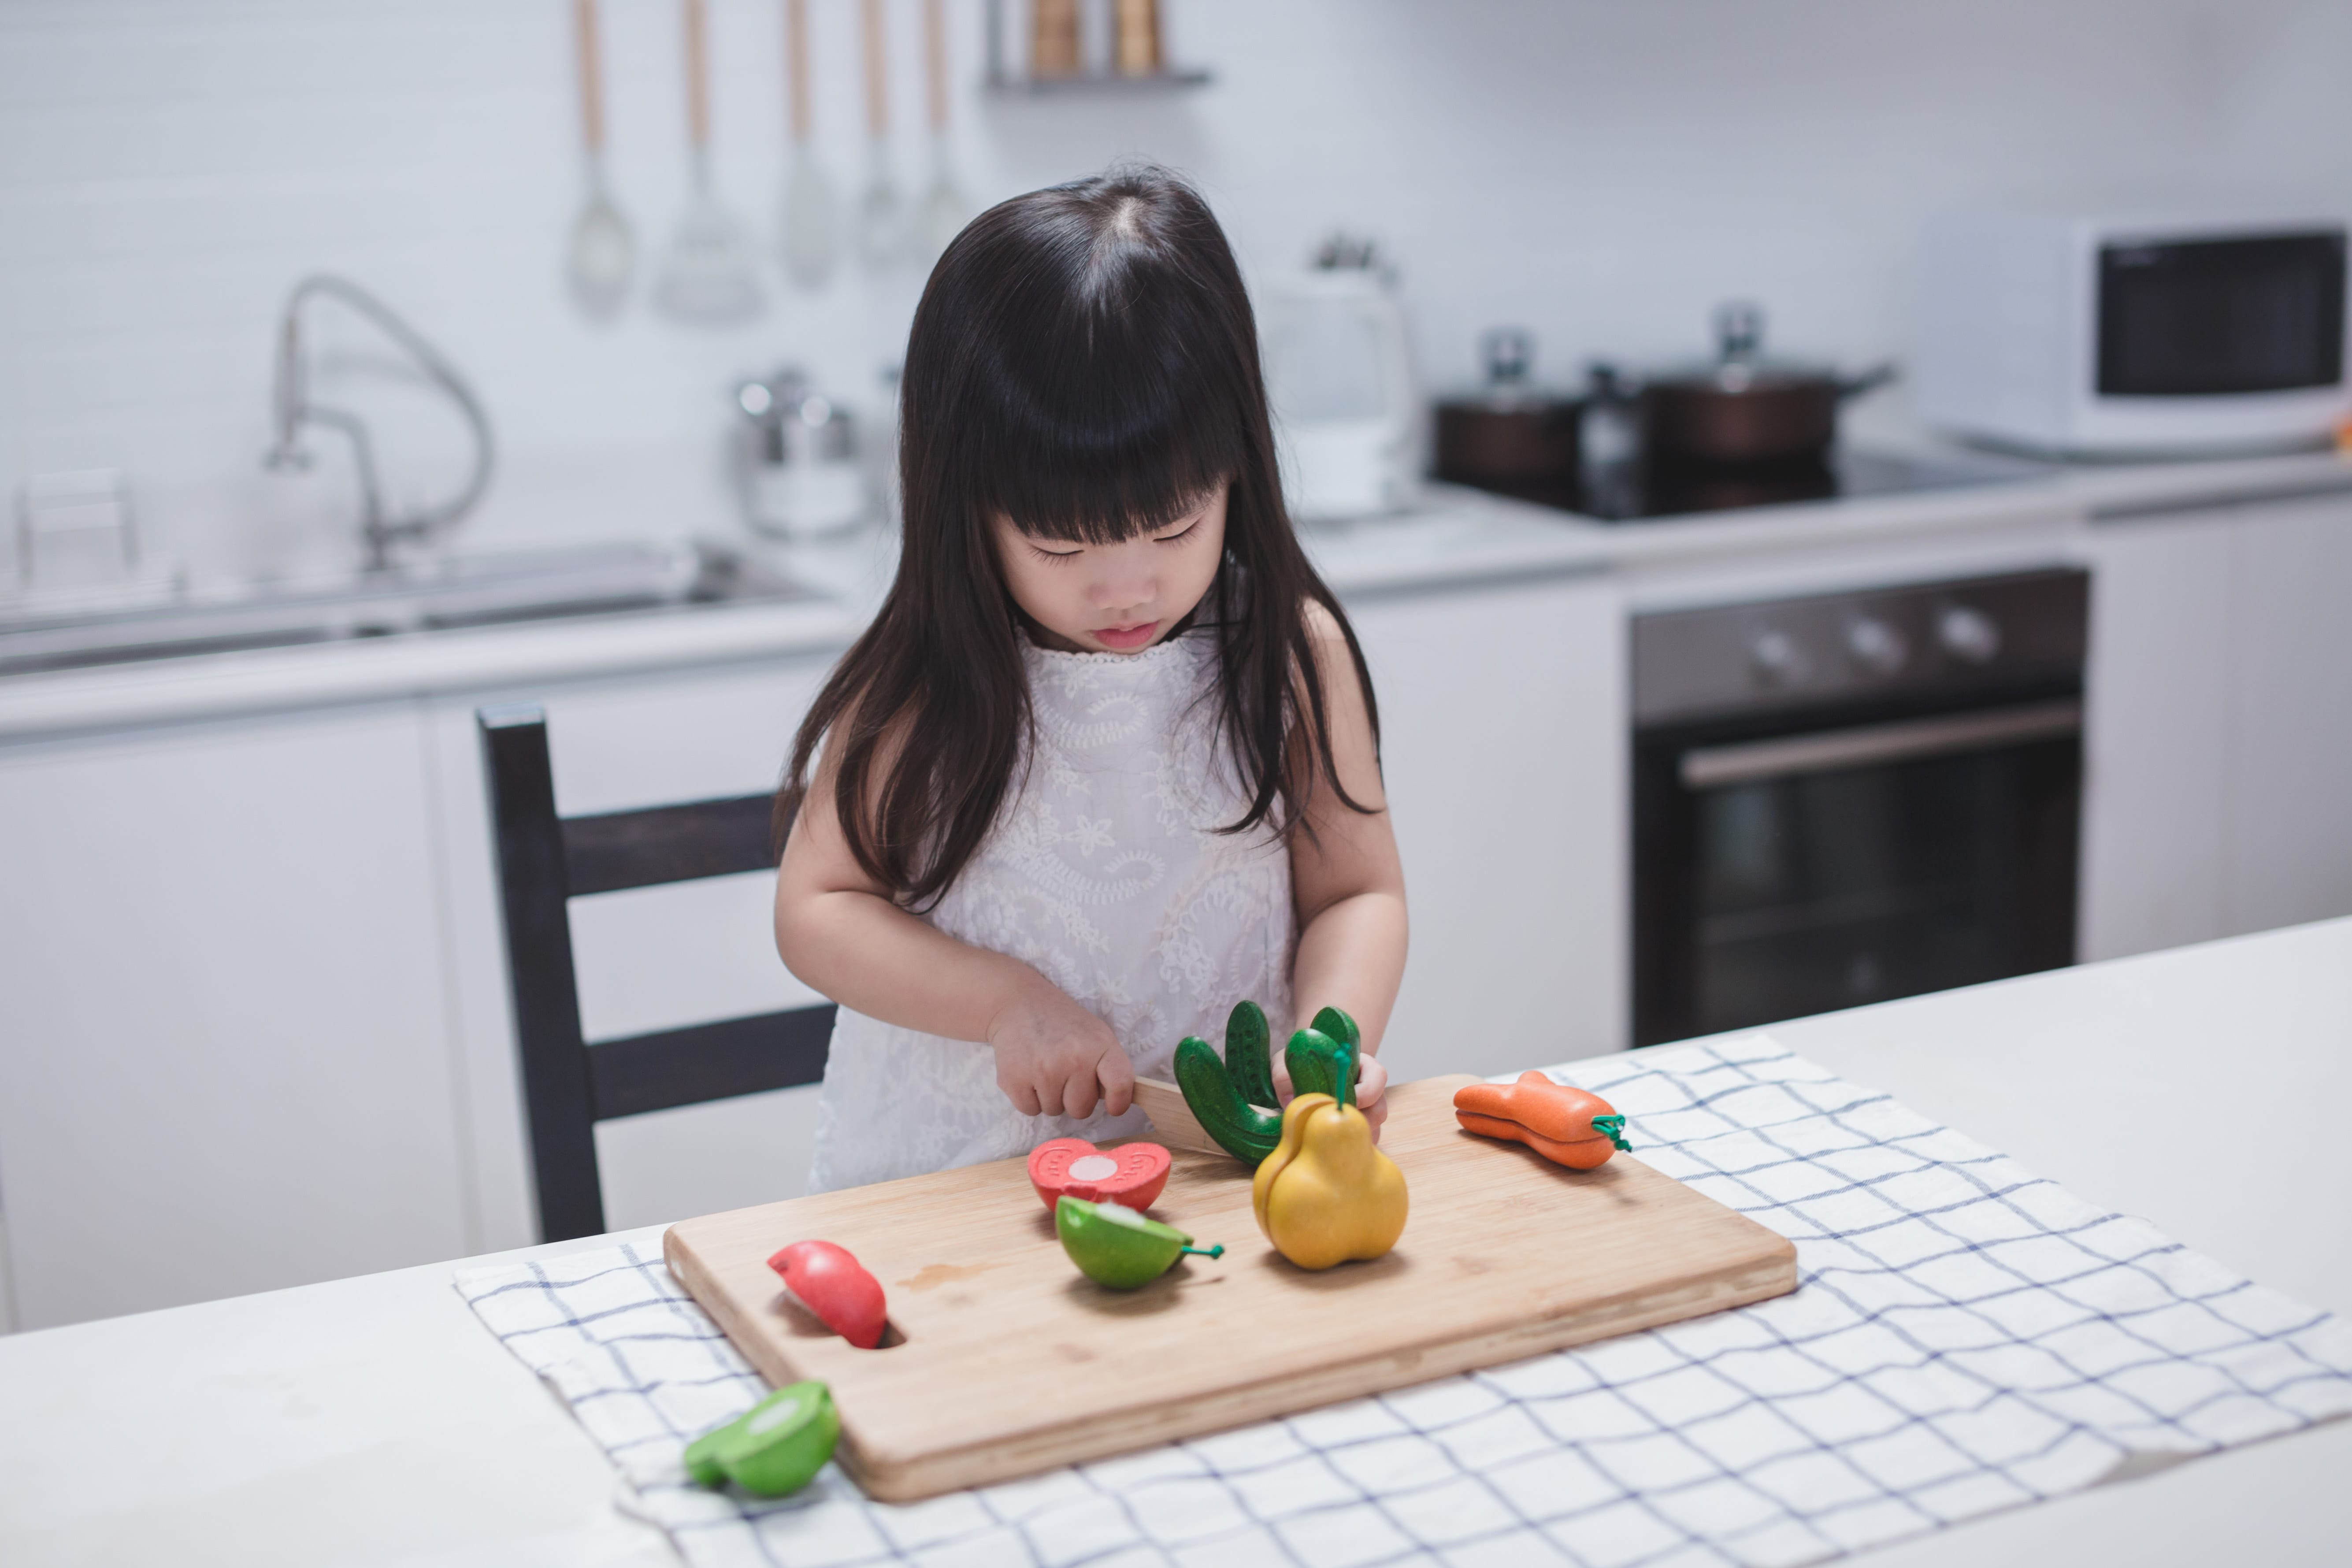 3495_PlanToys_WONKY_FRUIT_and_VEGETABLES_Pretend_Play_Coordination_Concentration_Imagination_Language_and_Communications_Social_Fine_Motor_18m_Wooden_toys_Education_toys_Safety_Toys_Non-toxic_2.jpg